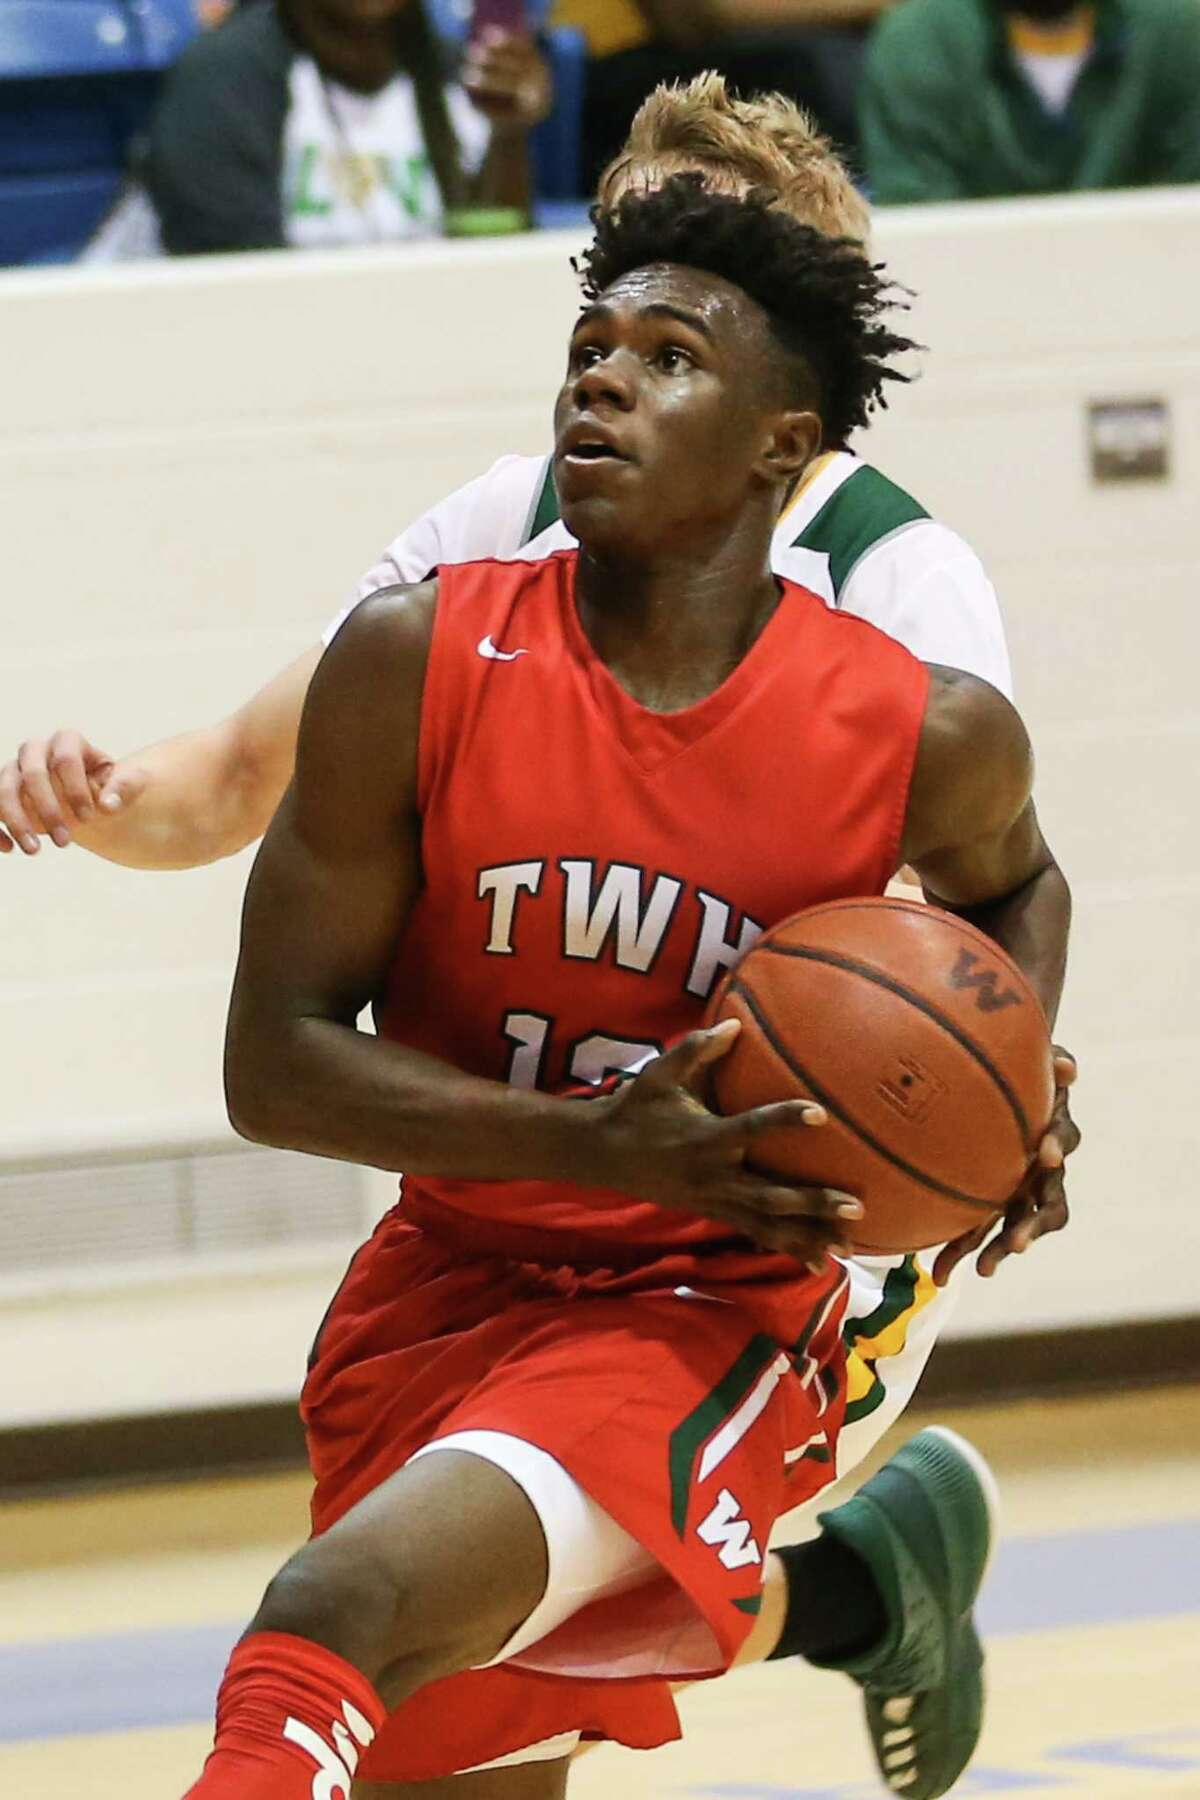 The Woodlands' KeSean Carter (12) drives for the basket during the boys basketball game against Longview on Monday, Feb. 19, 2018, at Angelina College in Lufkin. (Michael Minasi / Houston Chronicle)